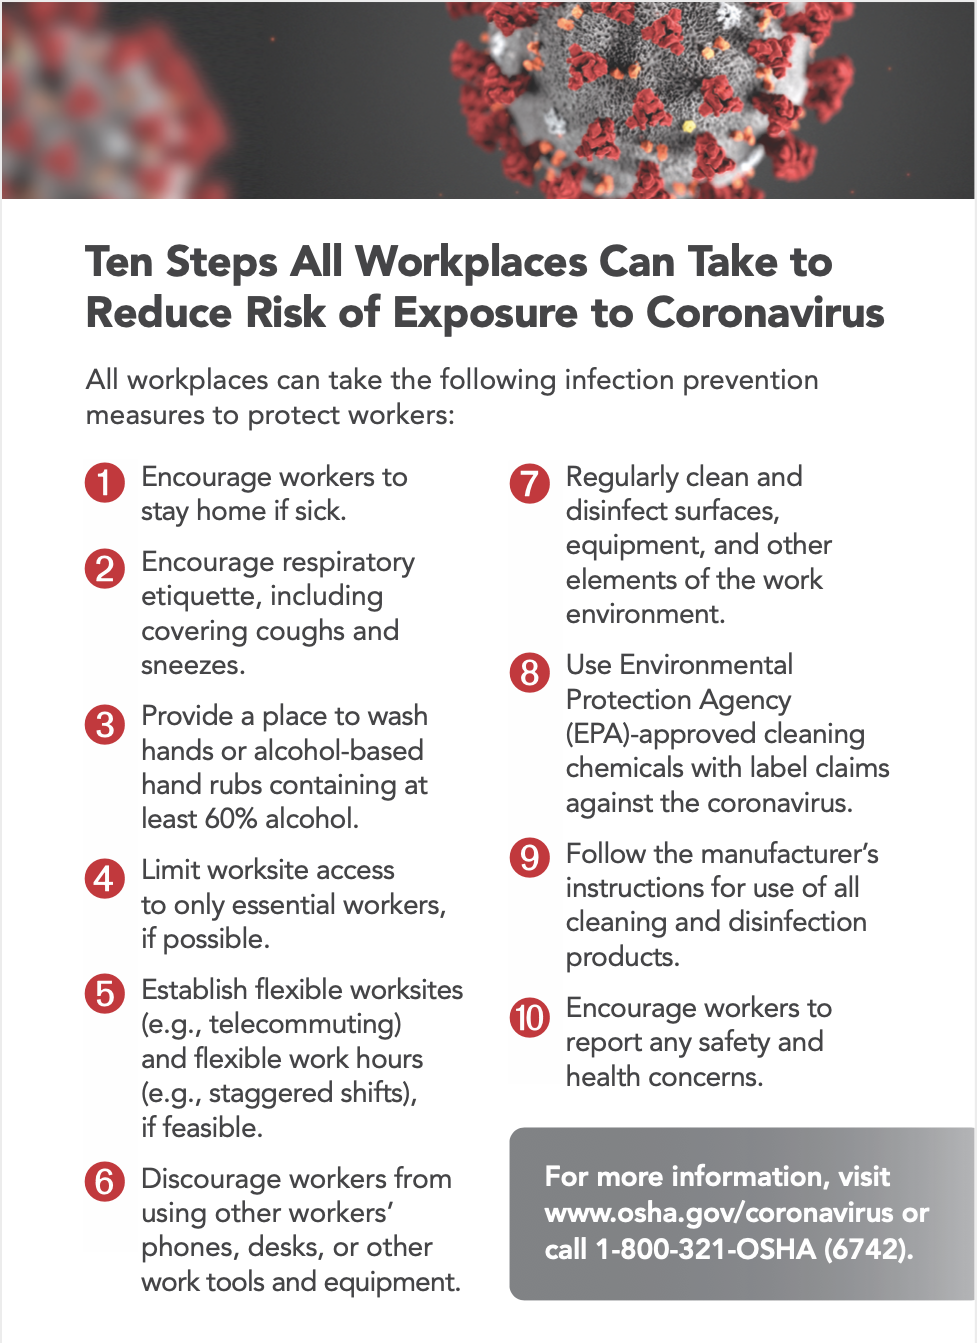 OSHA's ten tips for keeping workers safe during coronavirus